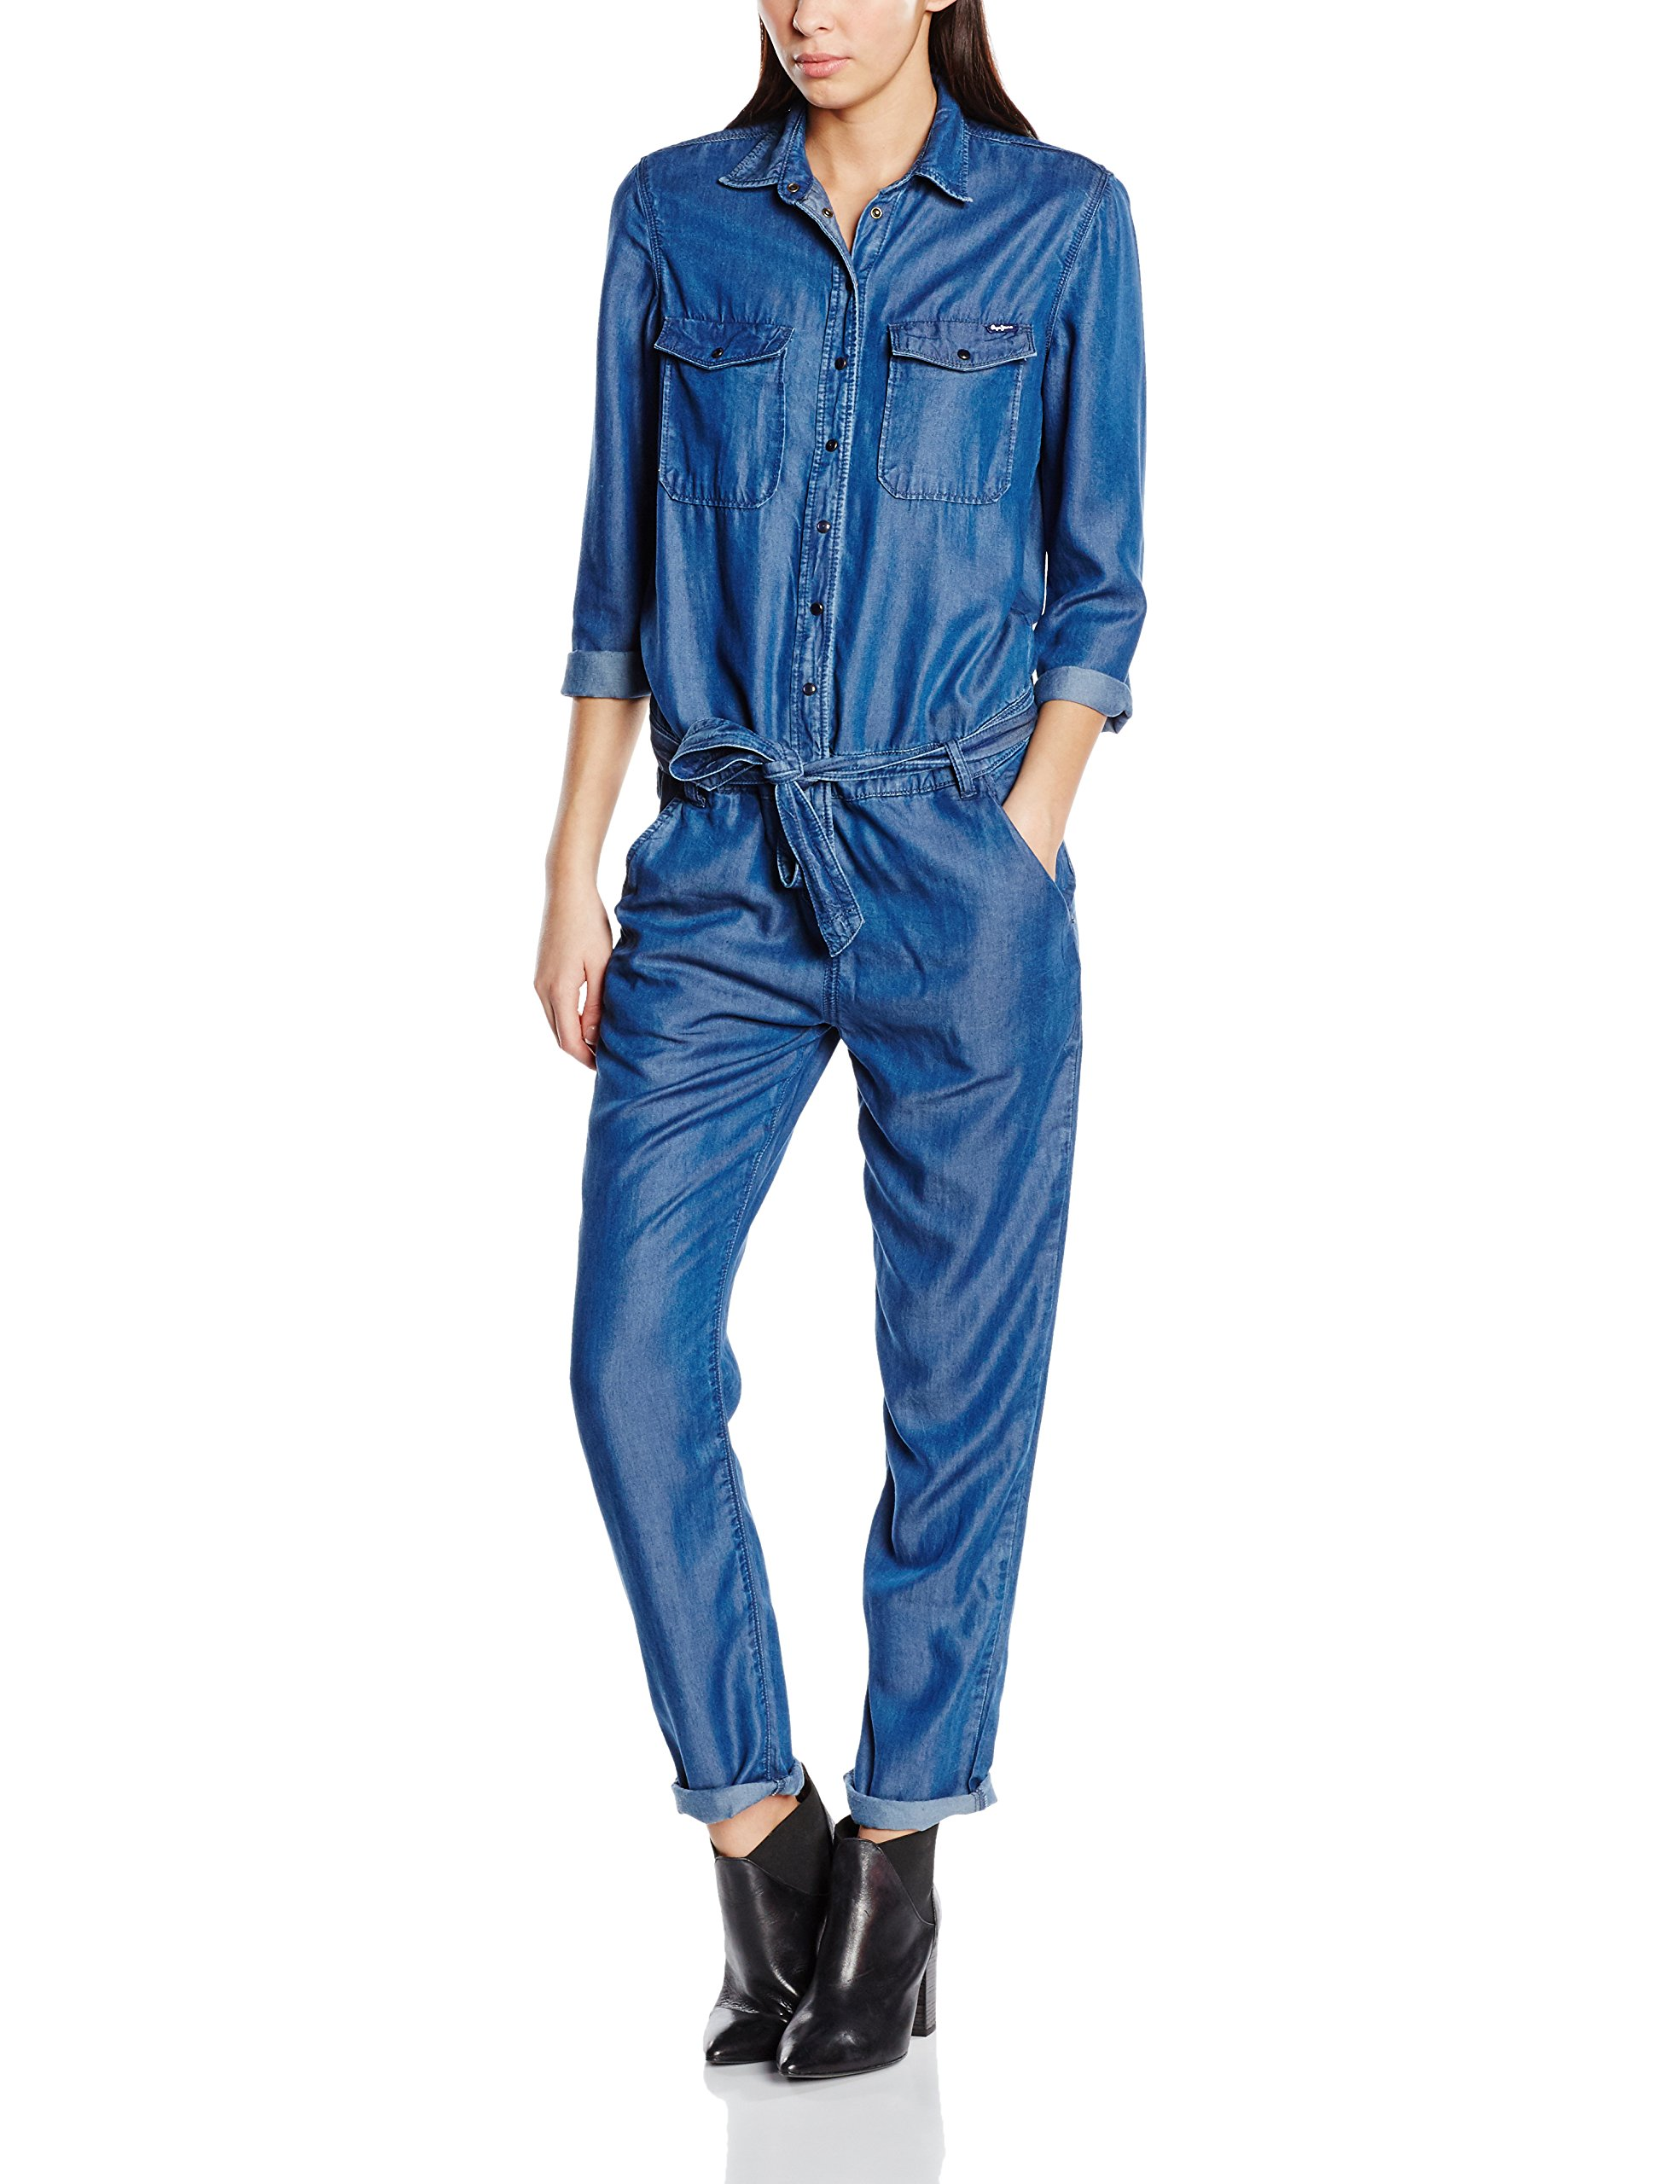 Jeans Femme BleudenimFr42taille FabricantL Pepe CameoCombinaison f7Yvgb6y